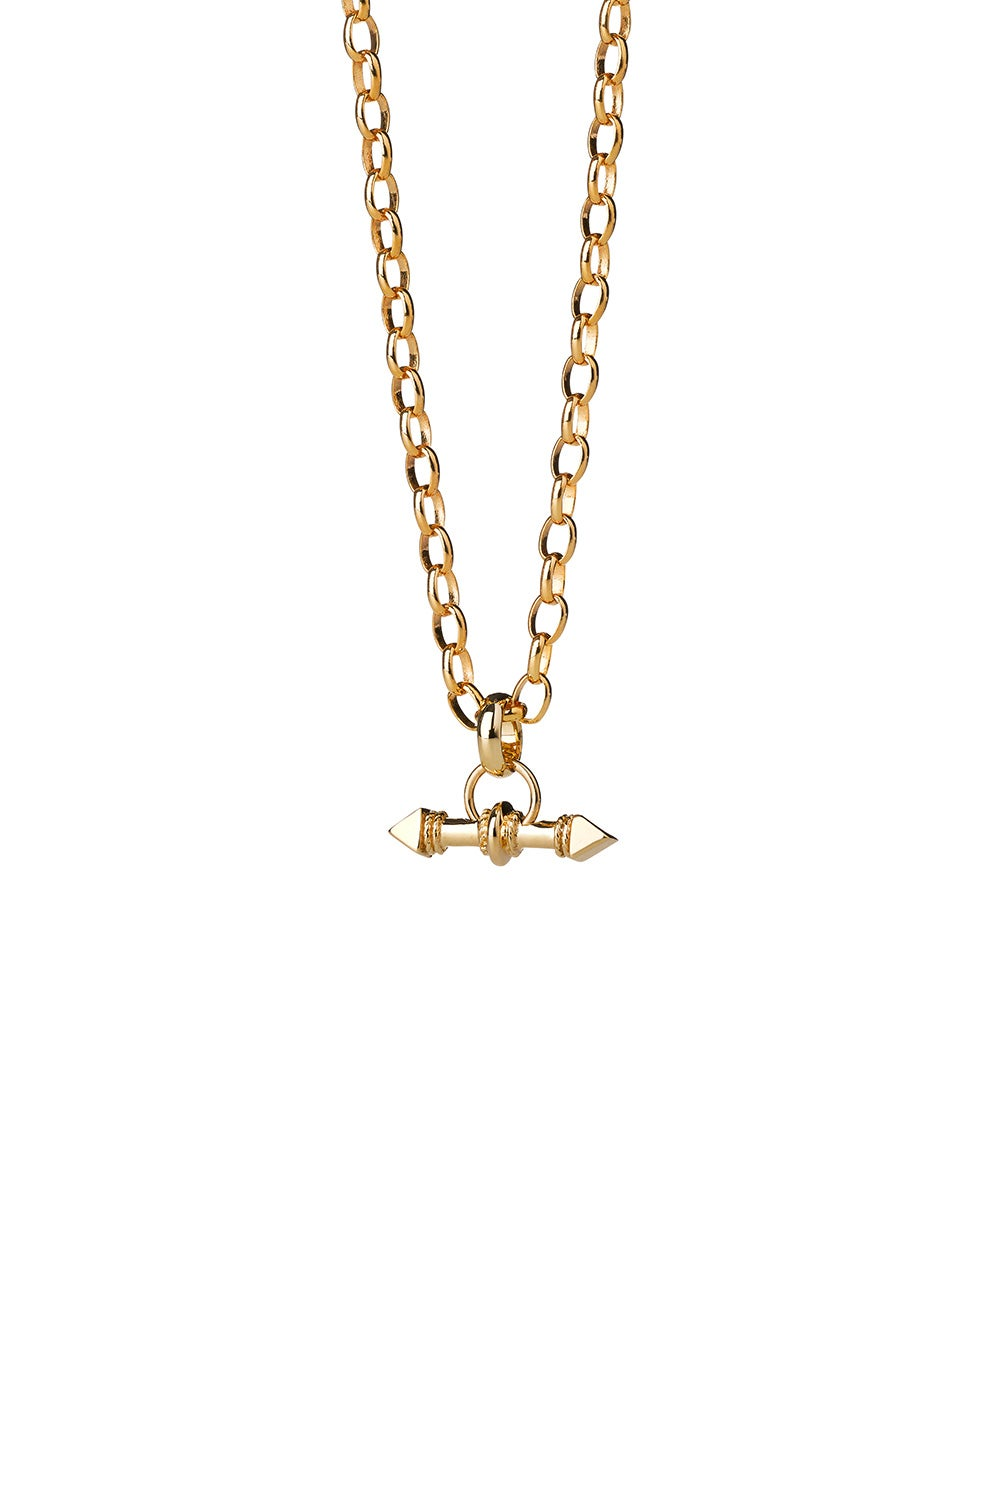 Arrow Fob Chain Gold